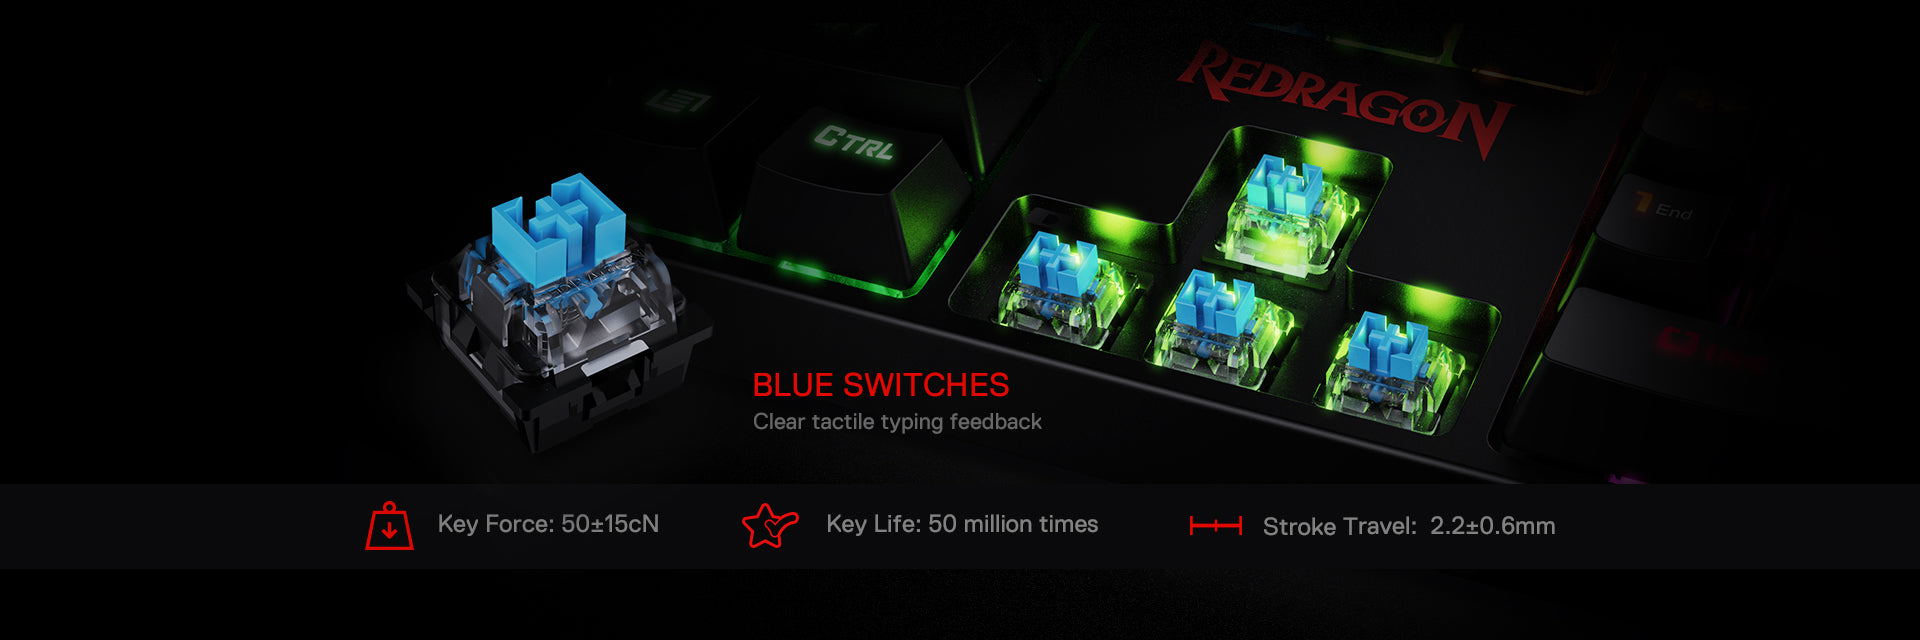 redragon k582 blue switches